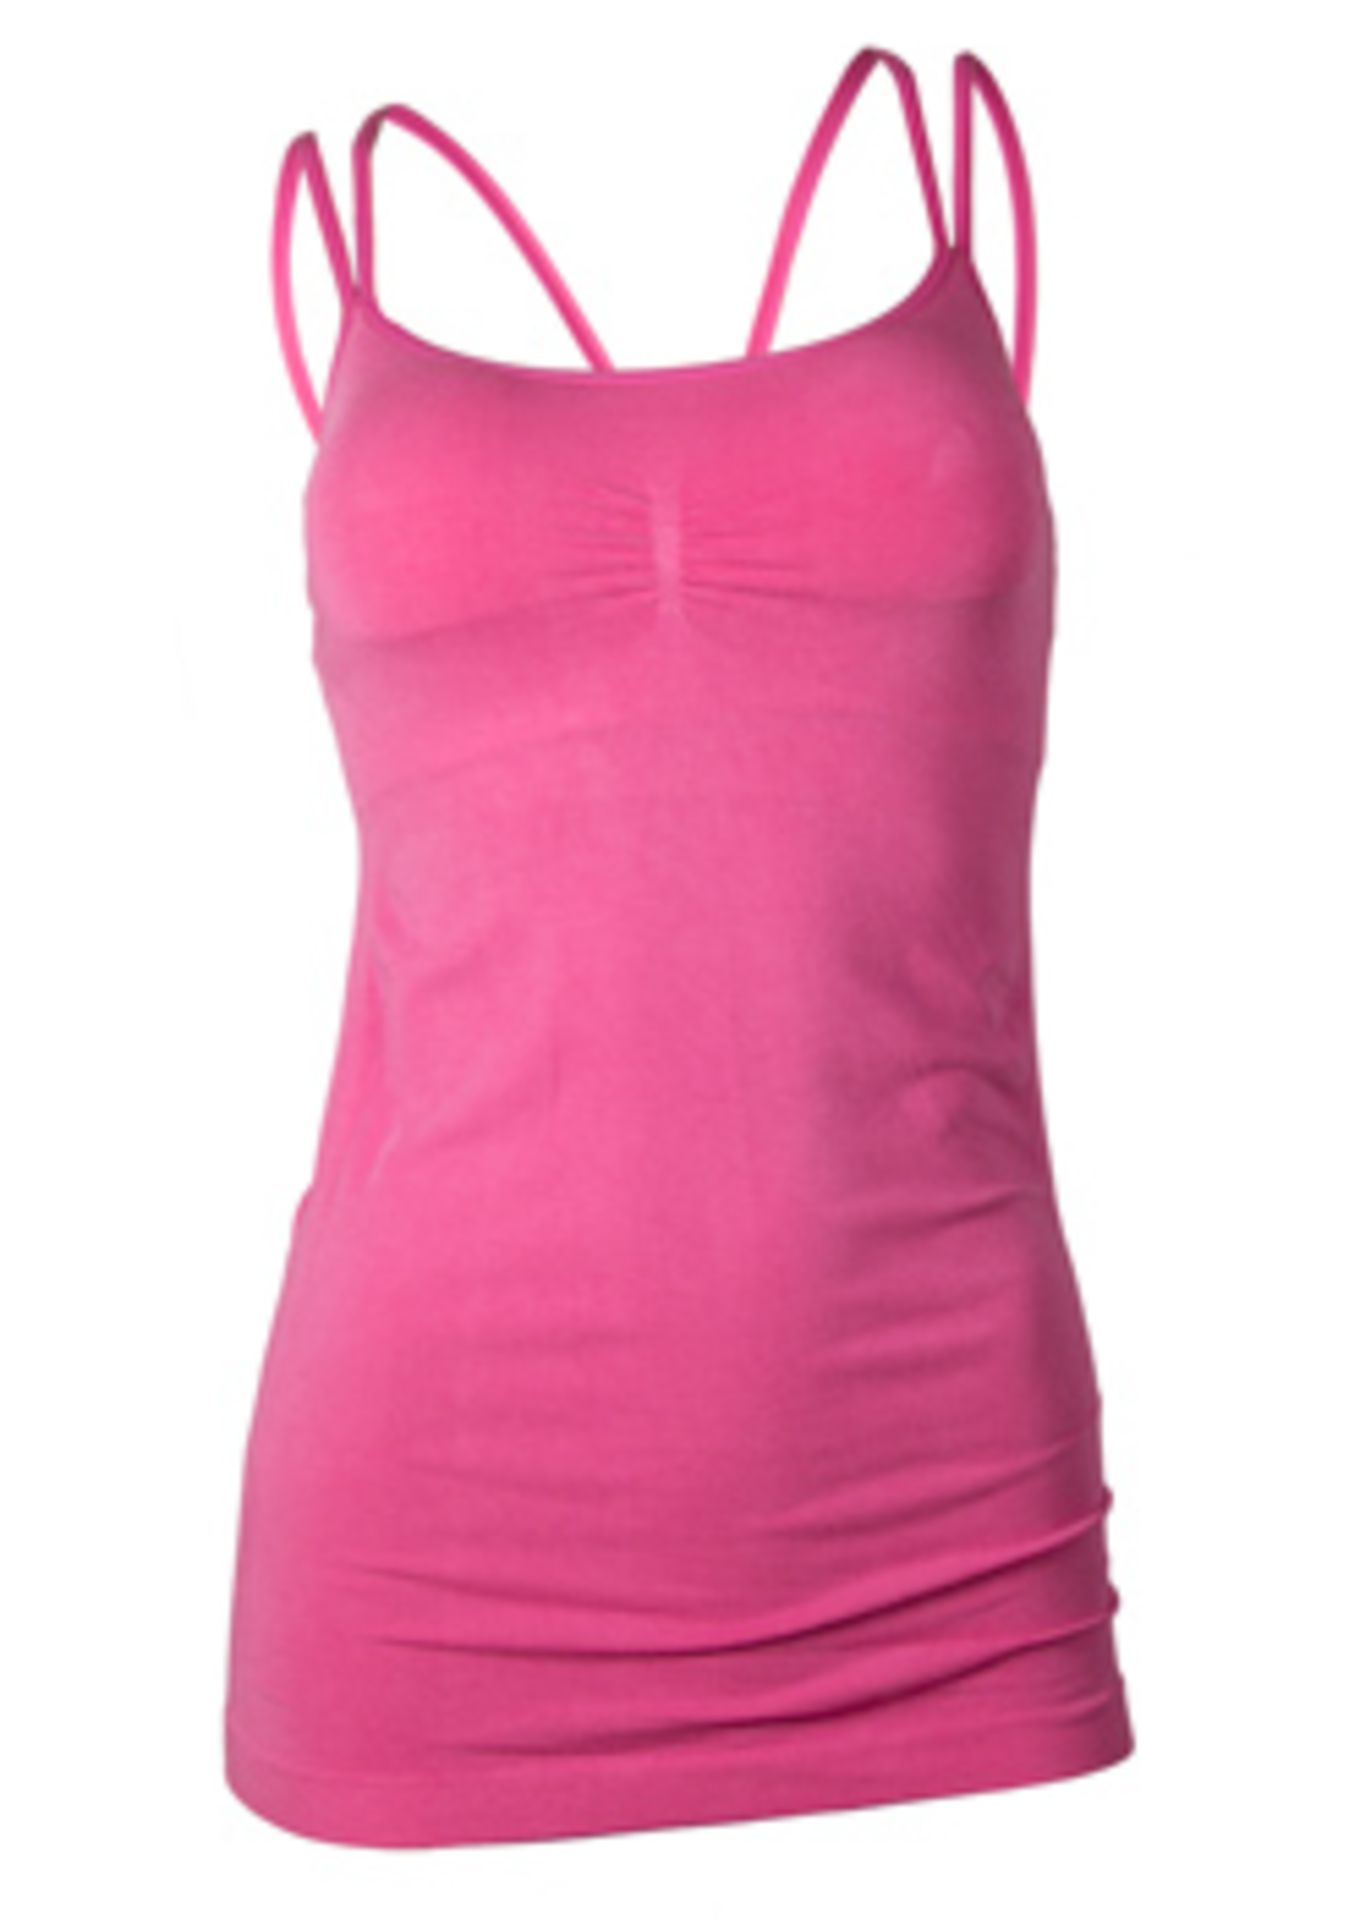 4 x Various Yoga Clothing   See description - Image 3 of 4